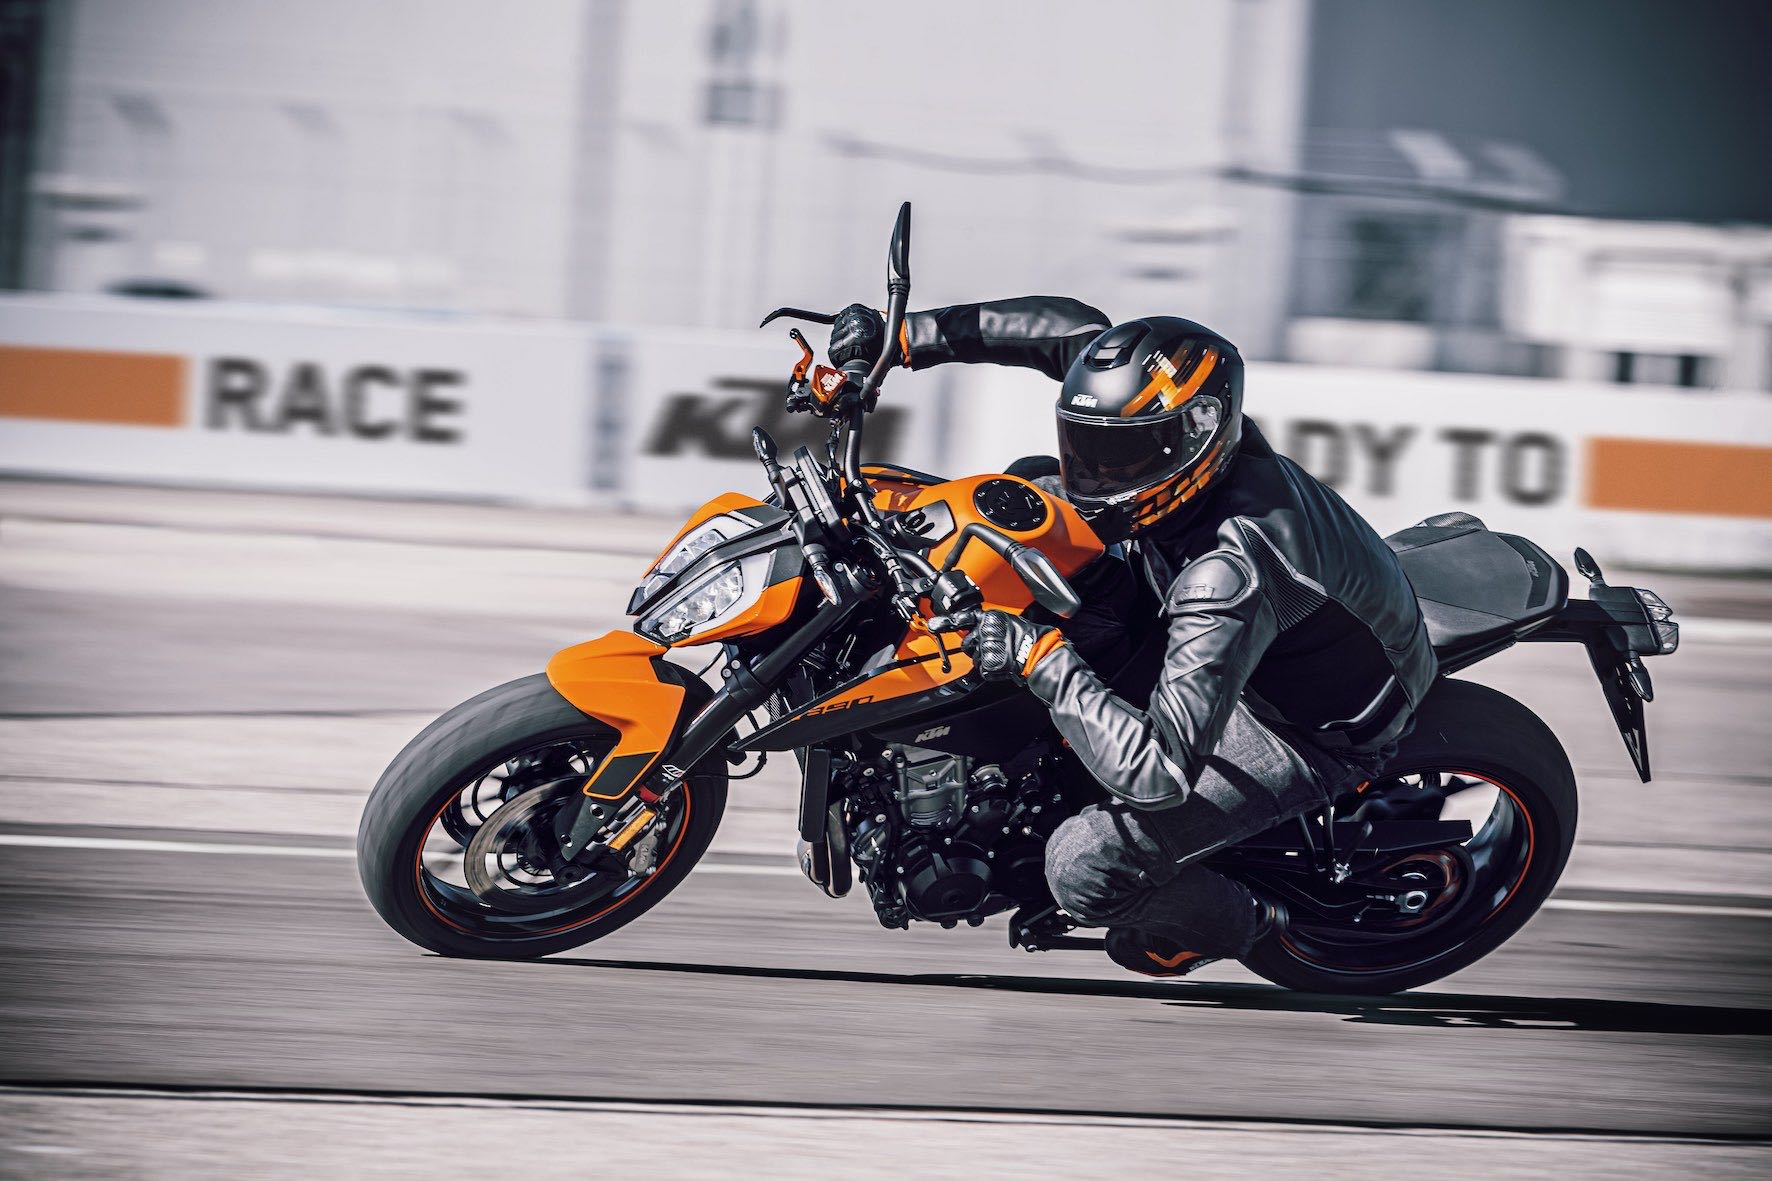 Introducing the new Scalpel, the 2021 KTM 890 DUKE